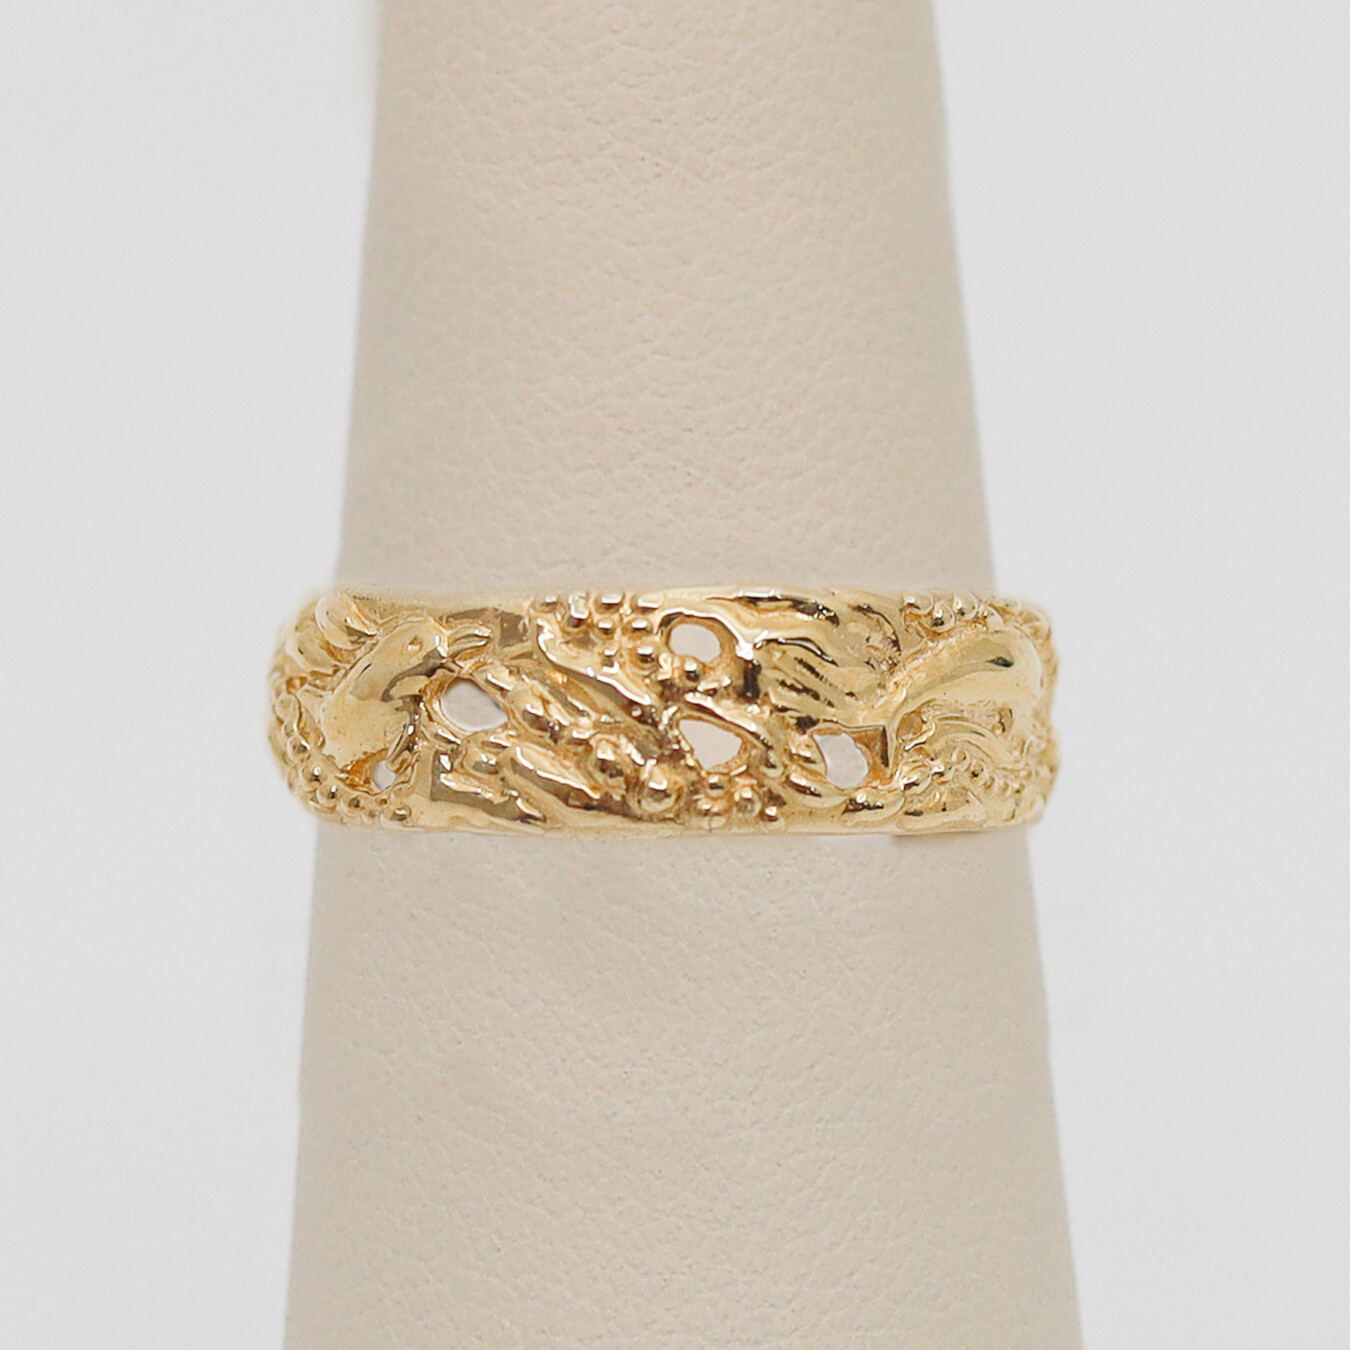 Gold Band with Dolphins